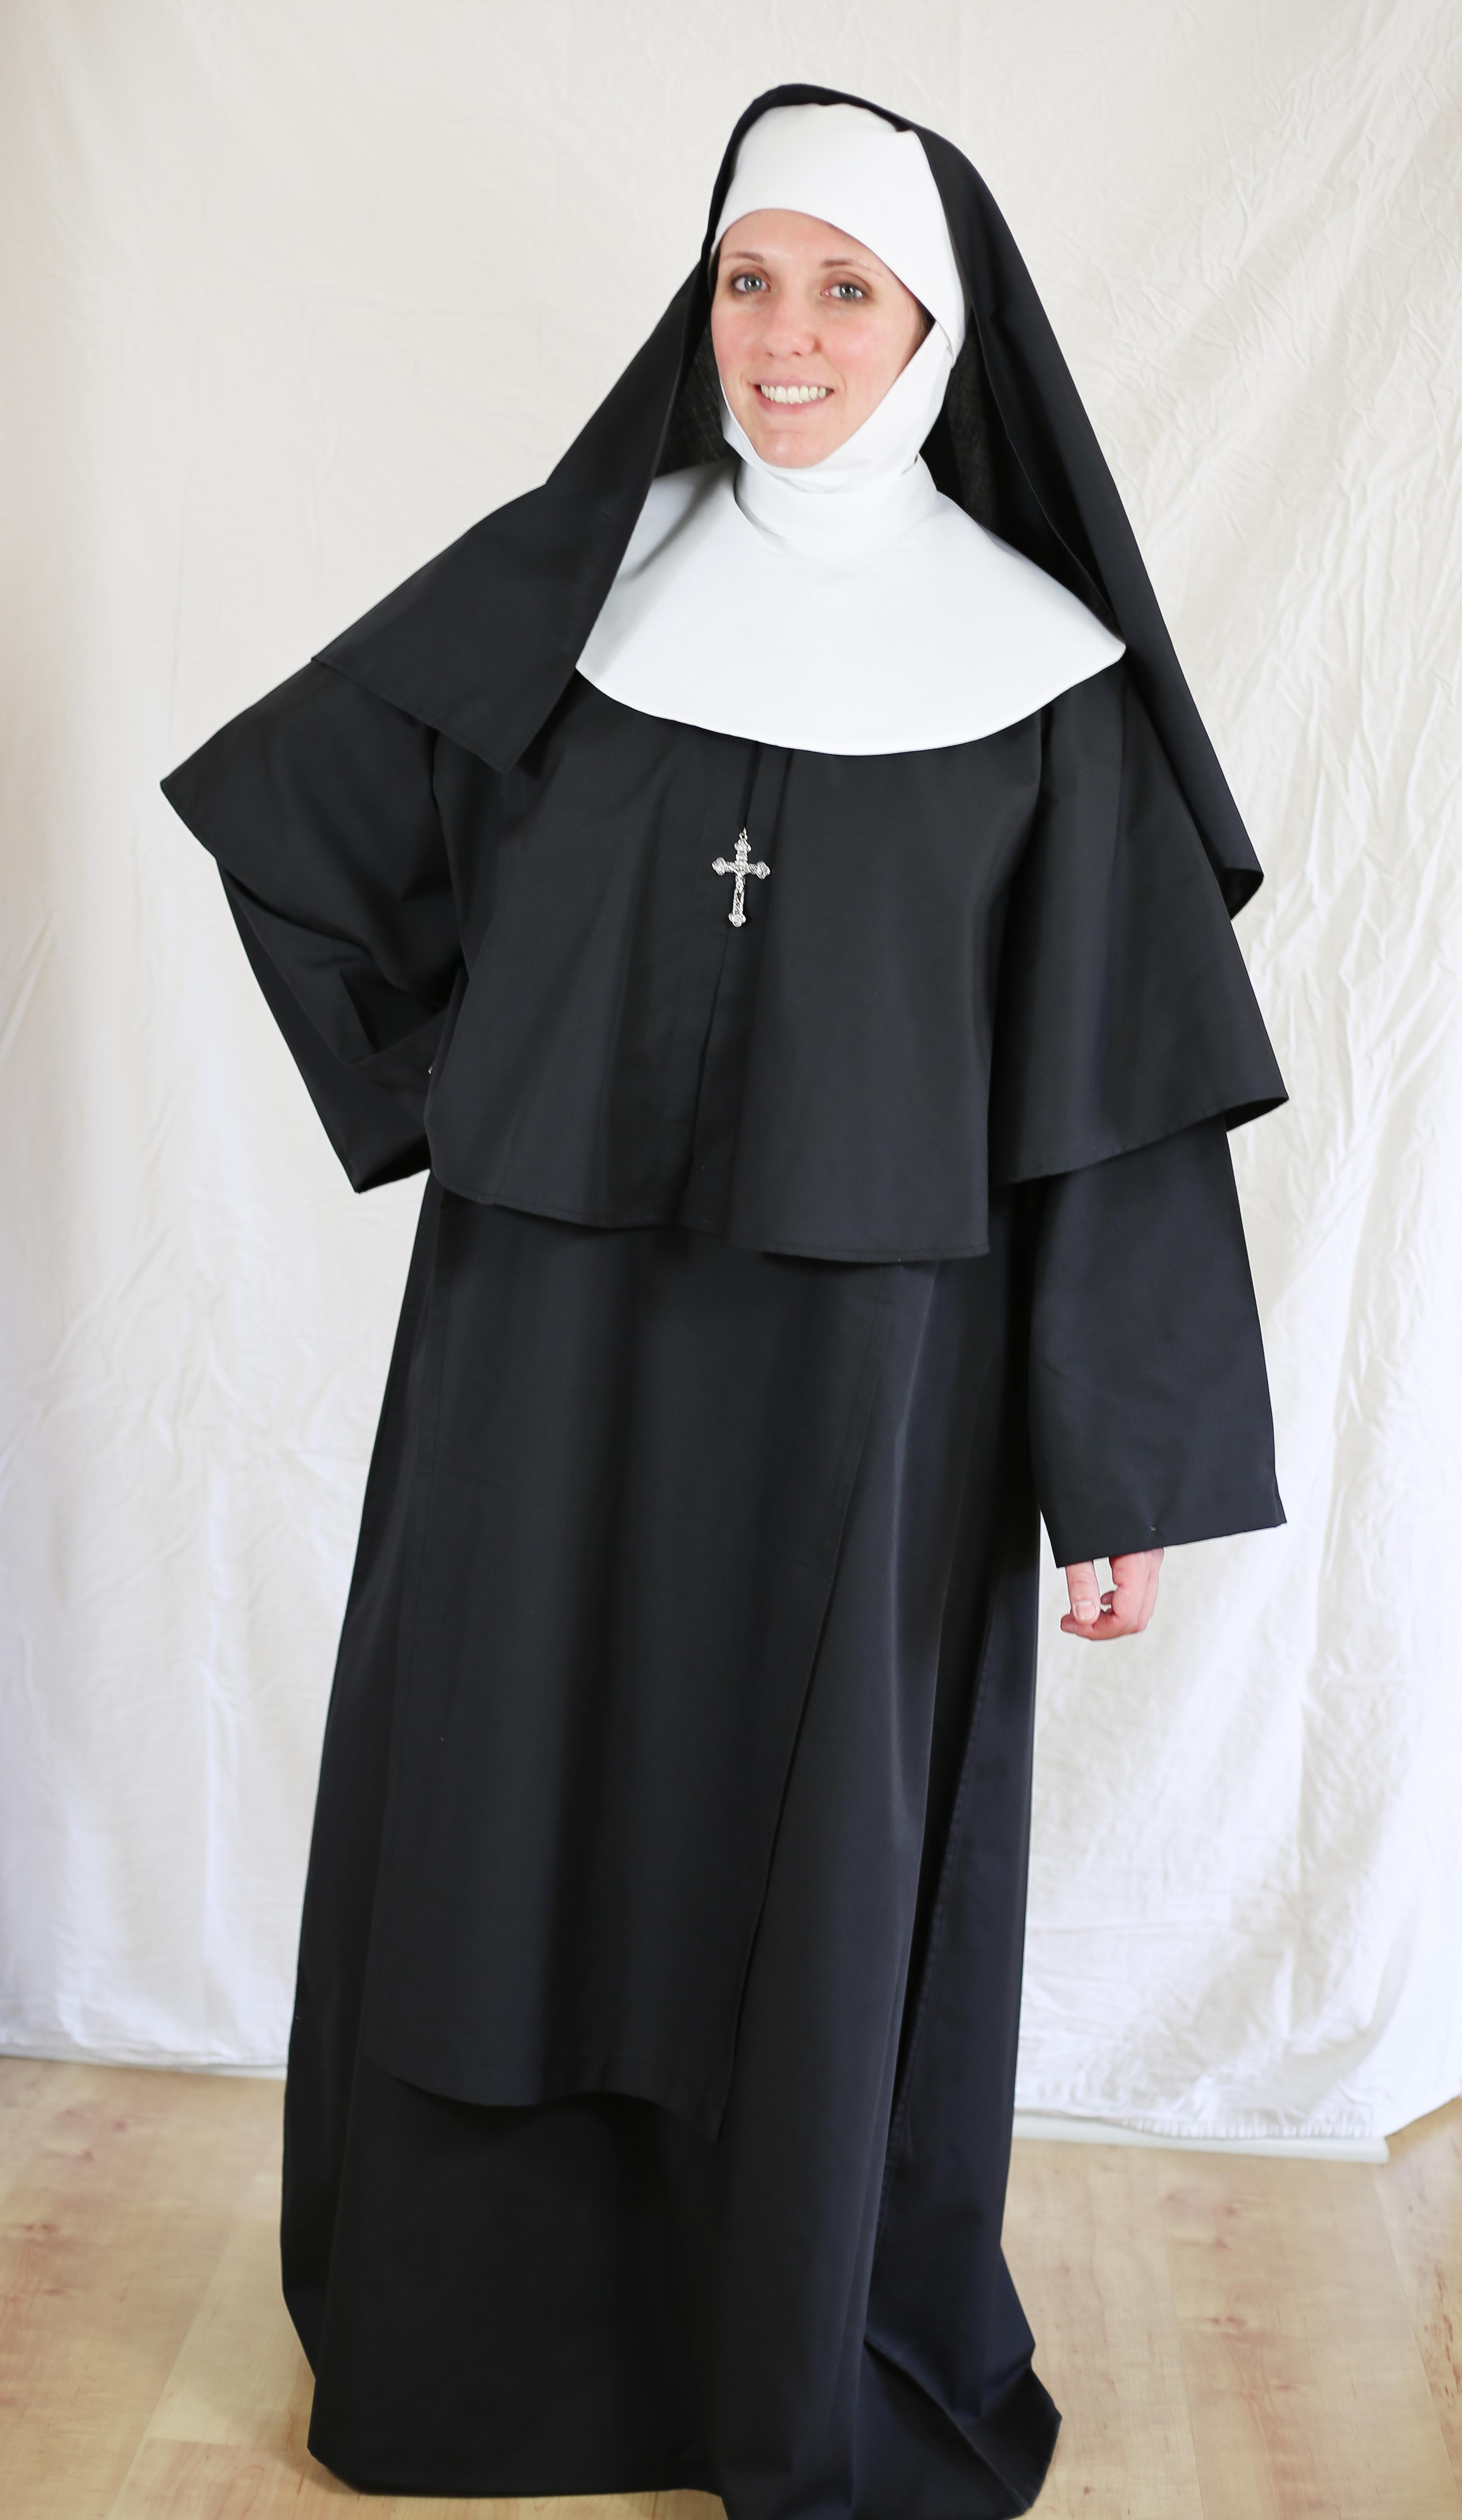 How to become a nun online